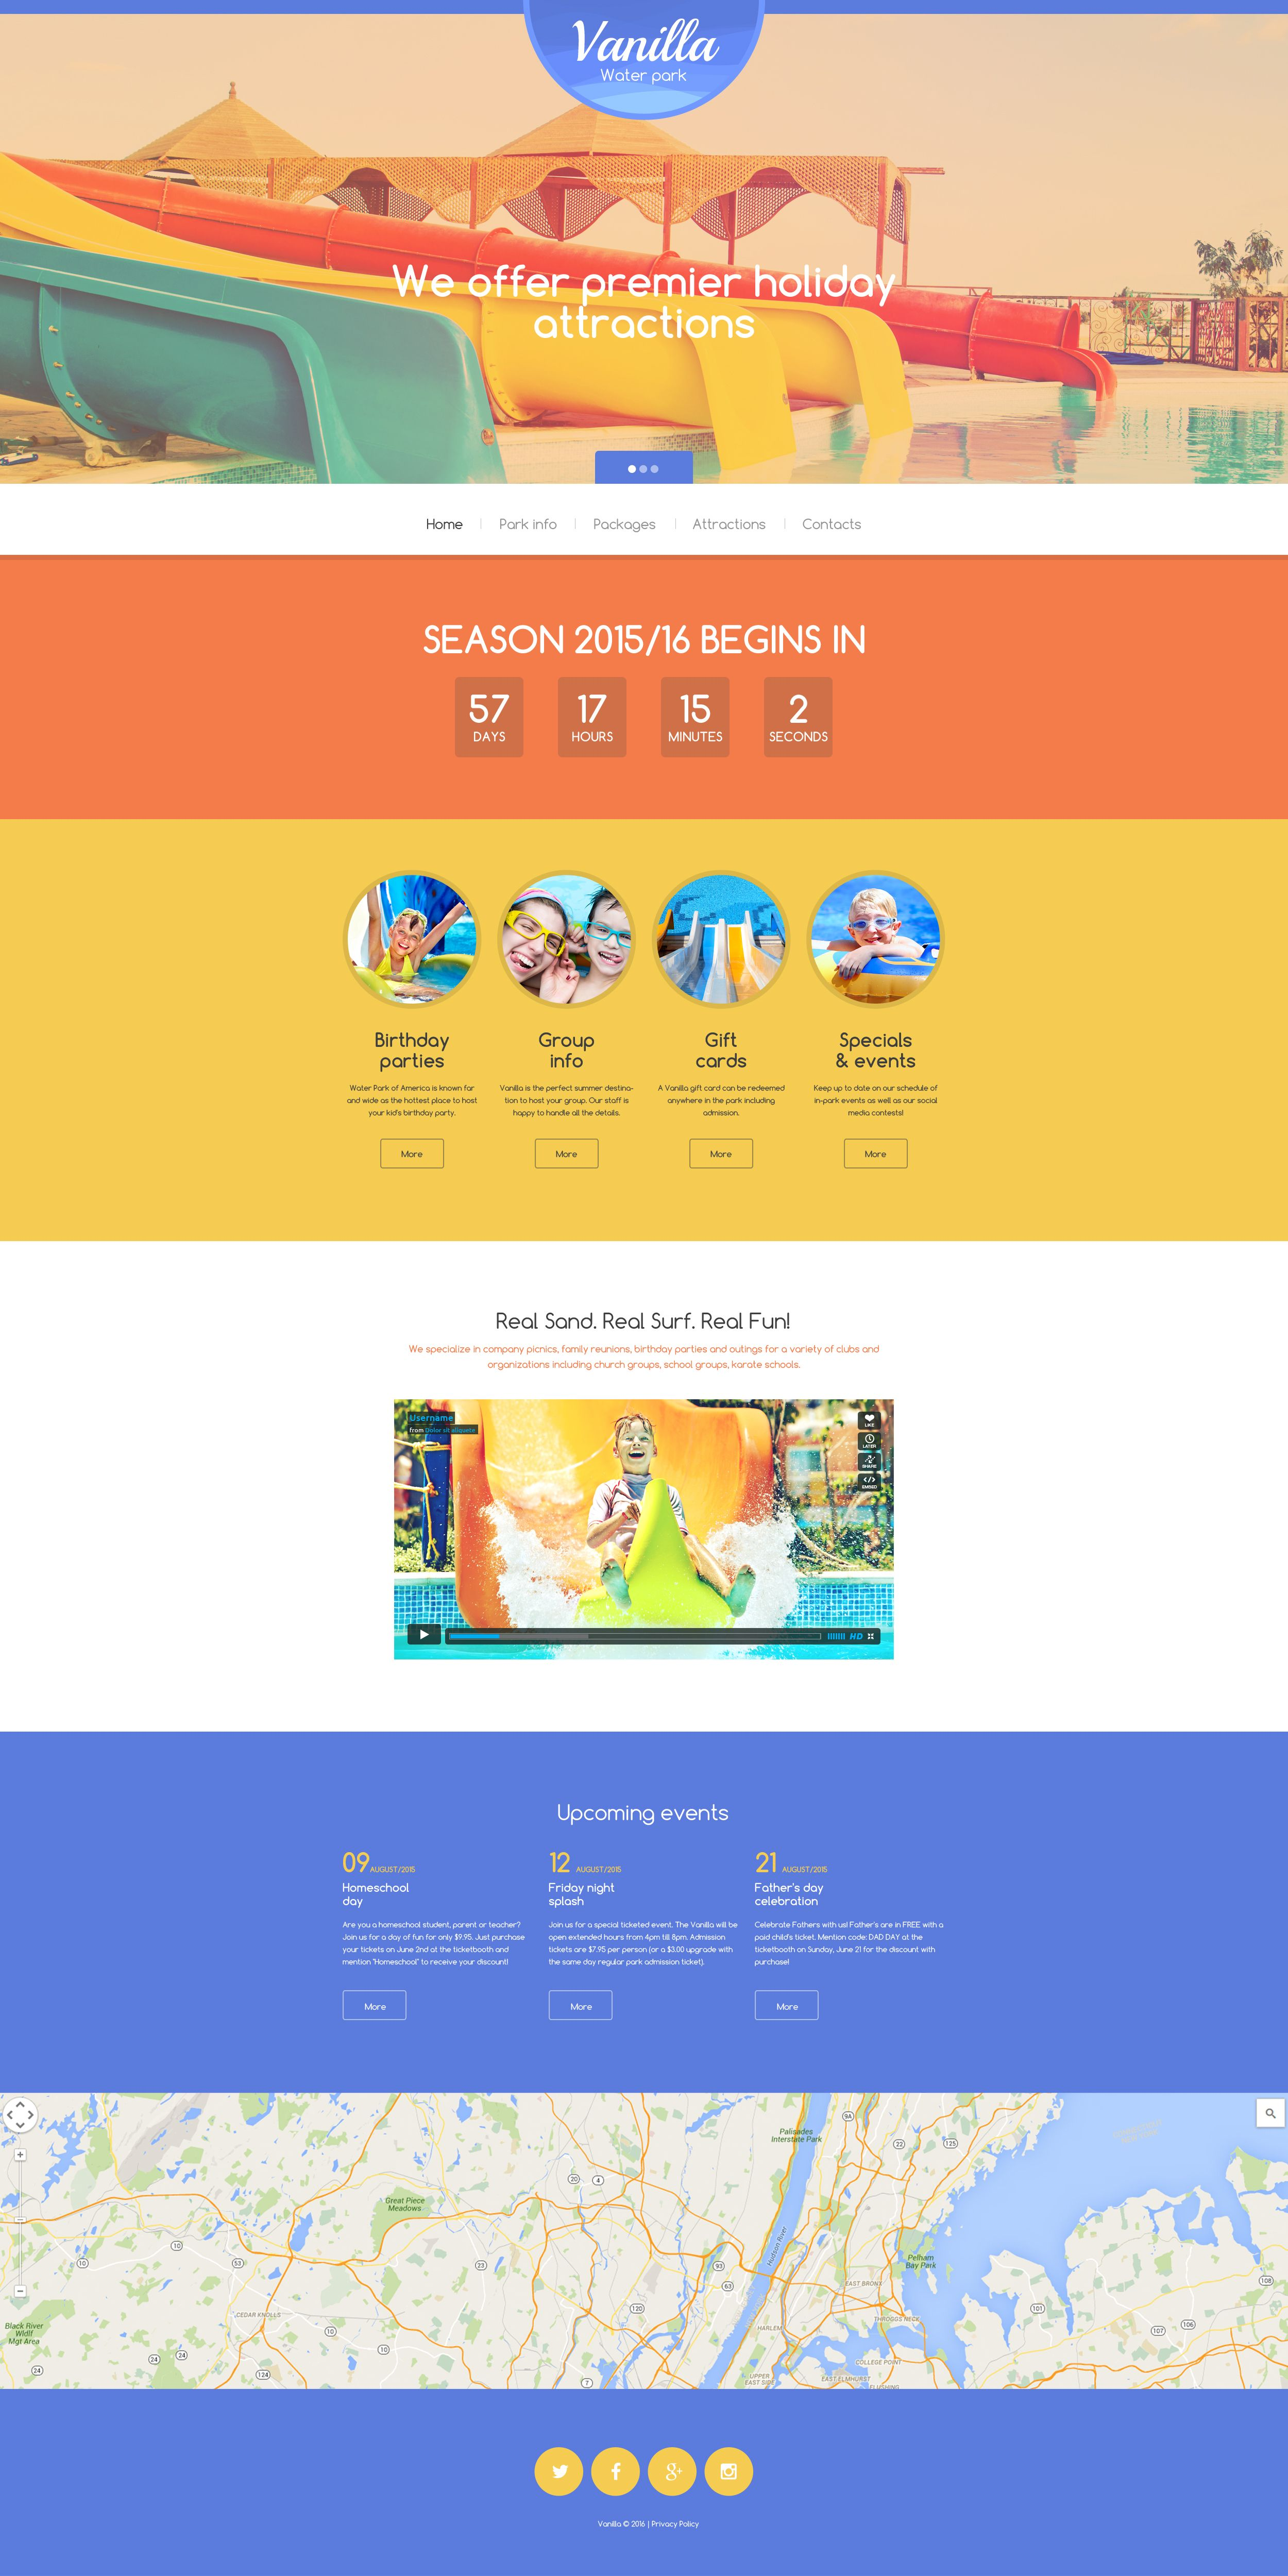 Vanilla water park website template template and website website template vanilla water park maxwellsz